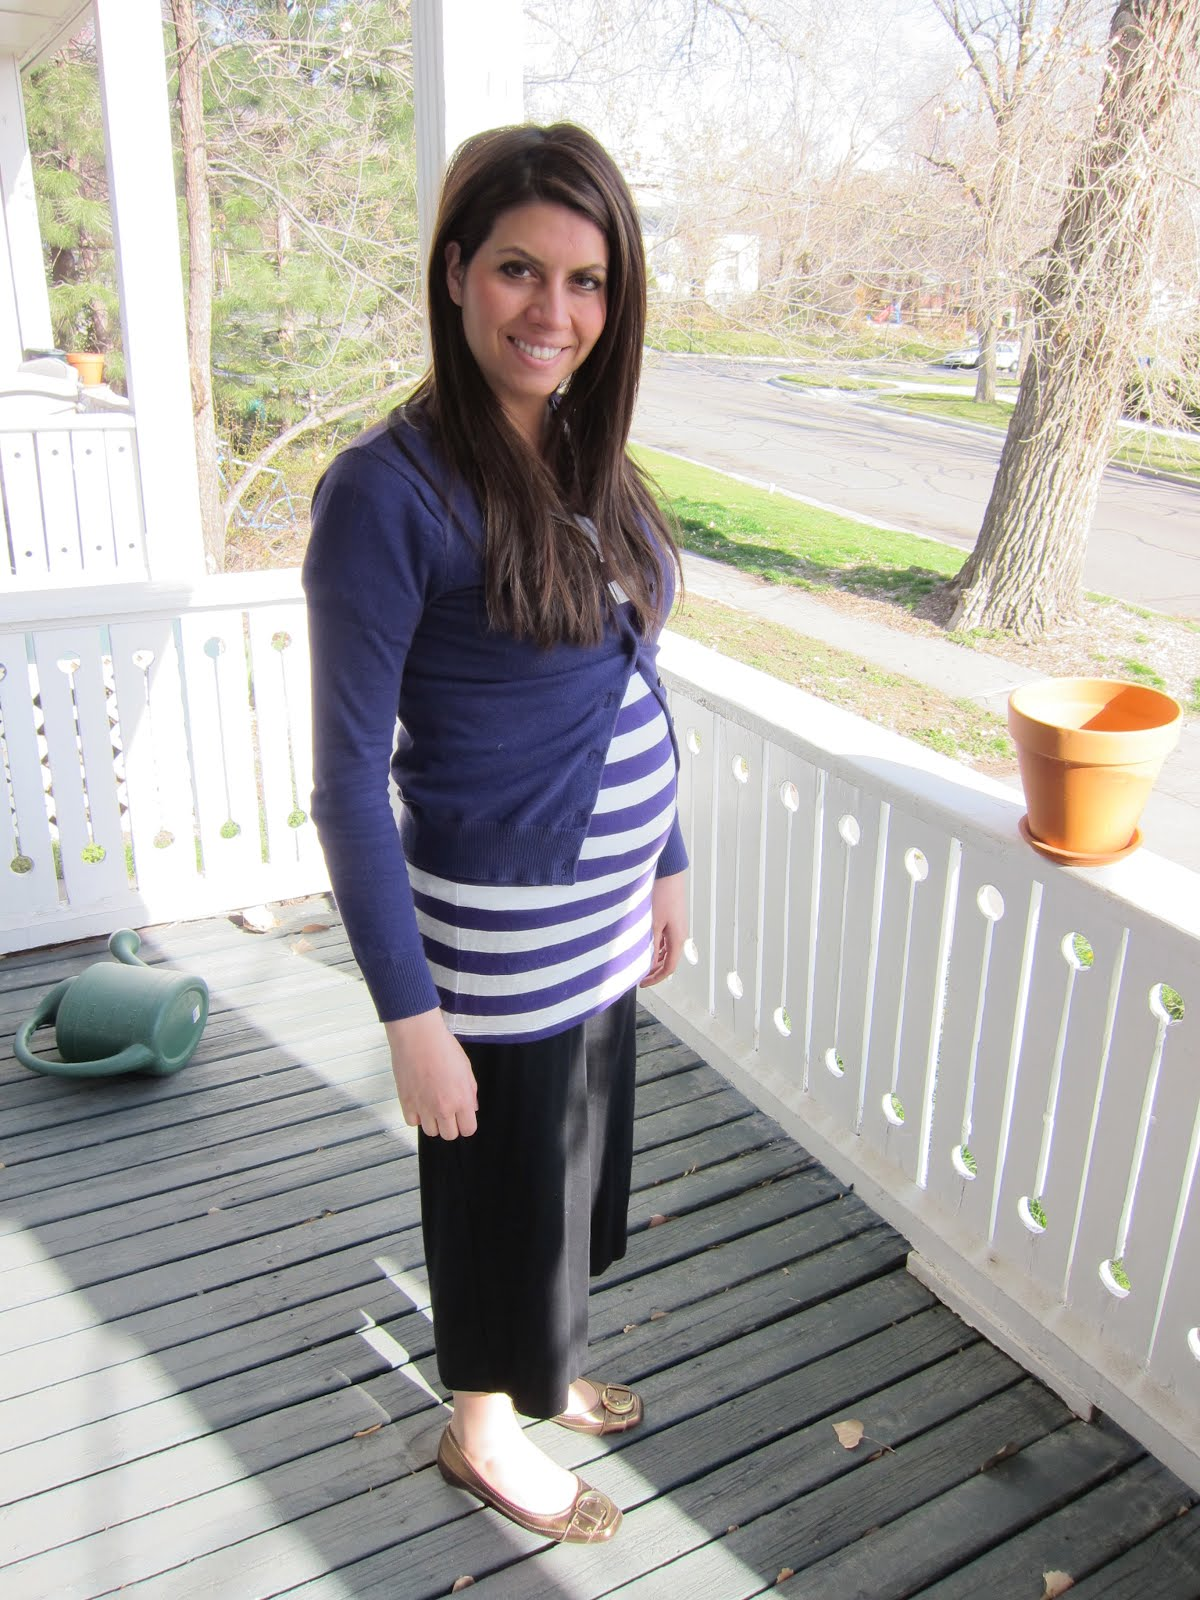 The Hanzon Family: 2010 - My belly at 21 weeks pregnant!